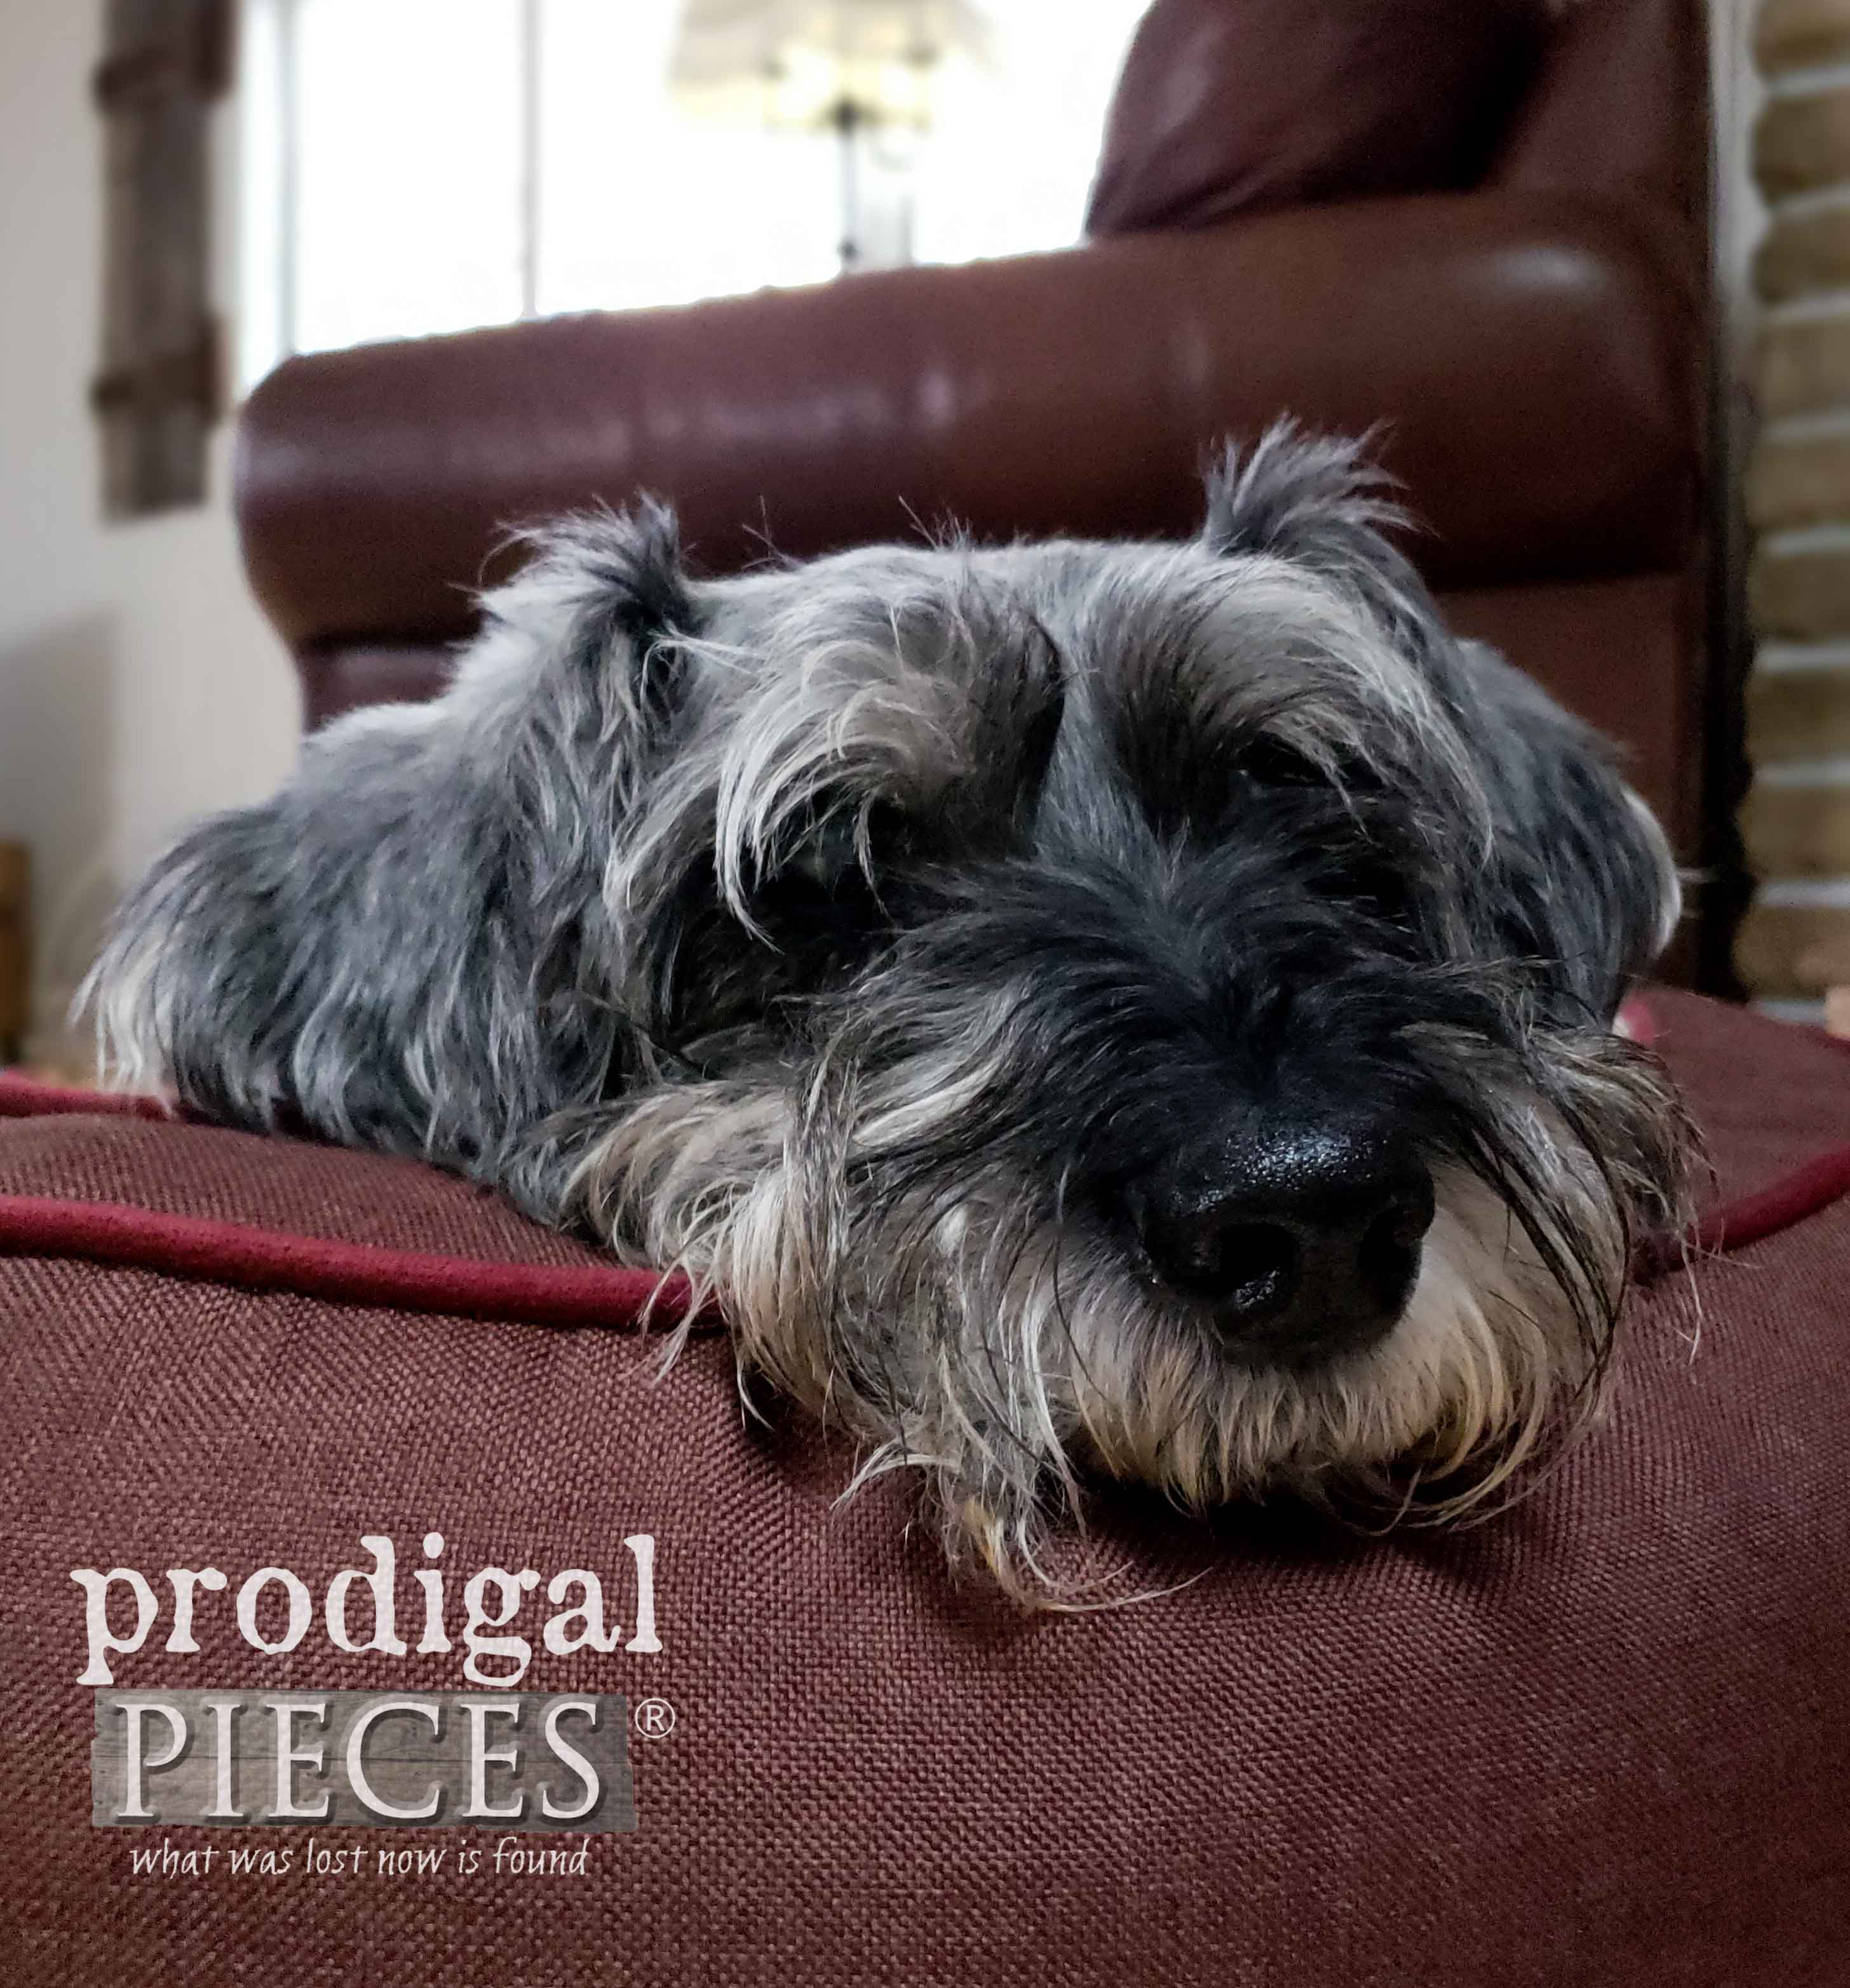 Miniature Schnauzer Comfy at Home | Prodigal Pieces supporting Habitat for Humanity #homeisthekey campaign | prodigalpieces.com #prodigalpieces #home #dogs